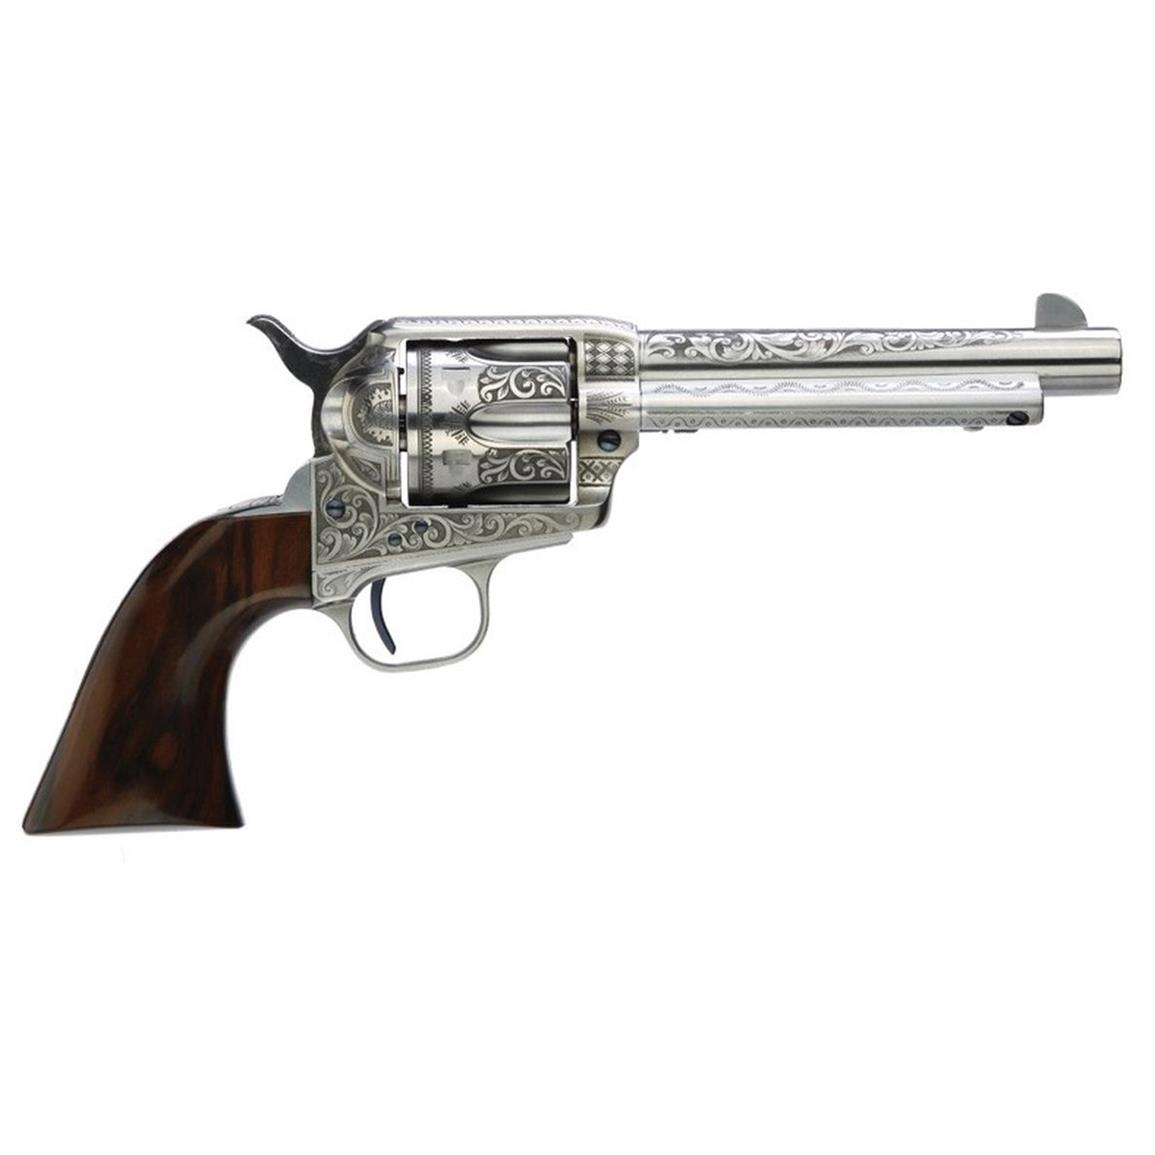 "Taylor's & Co. Uberti 1873 Cattleman Photo Engraved, Revolver, .357 Magnum, 703AWE, 4.75"" Barrel"